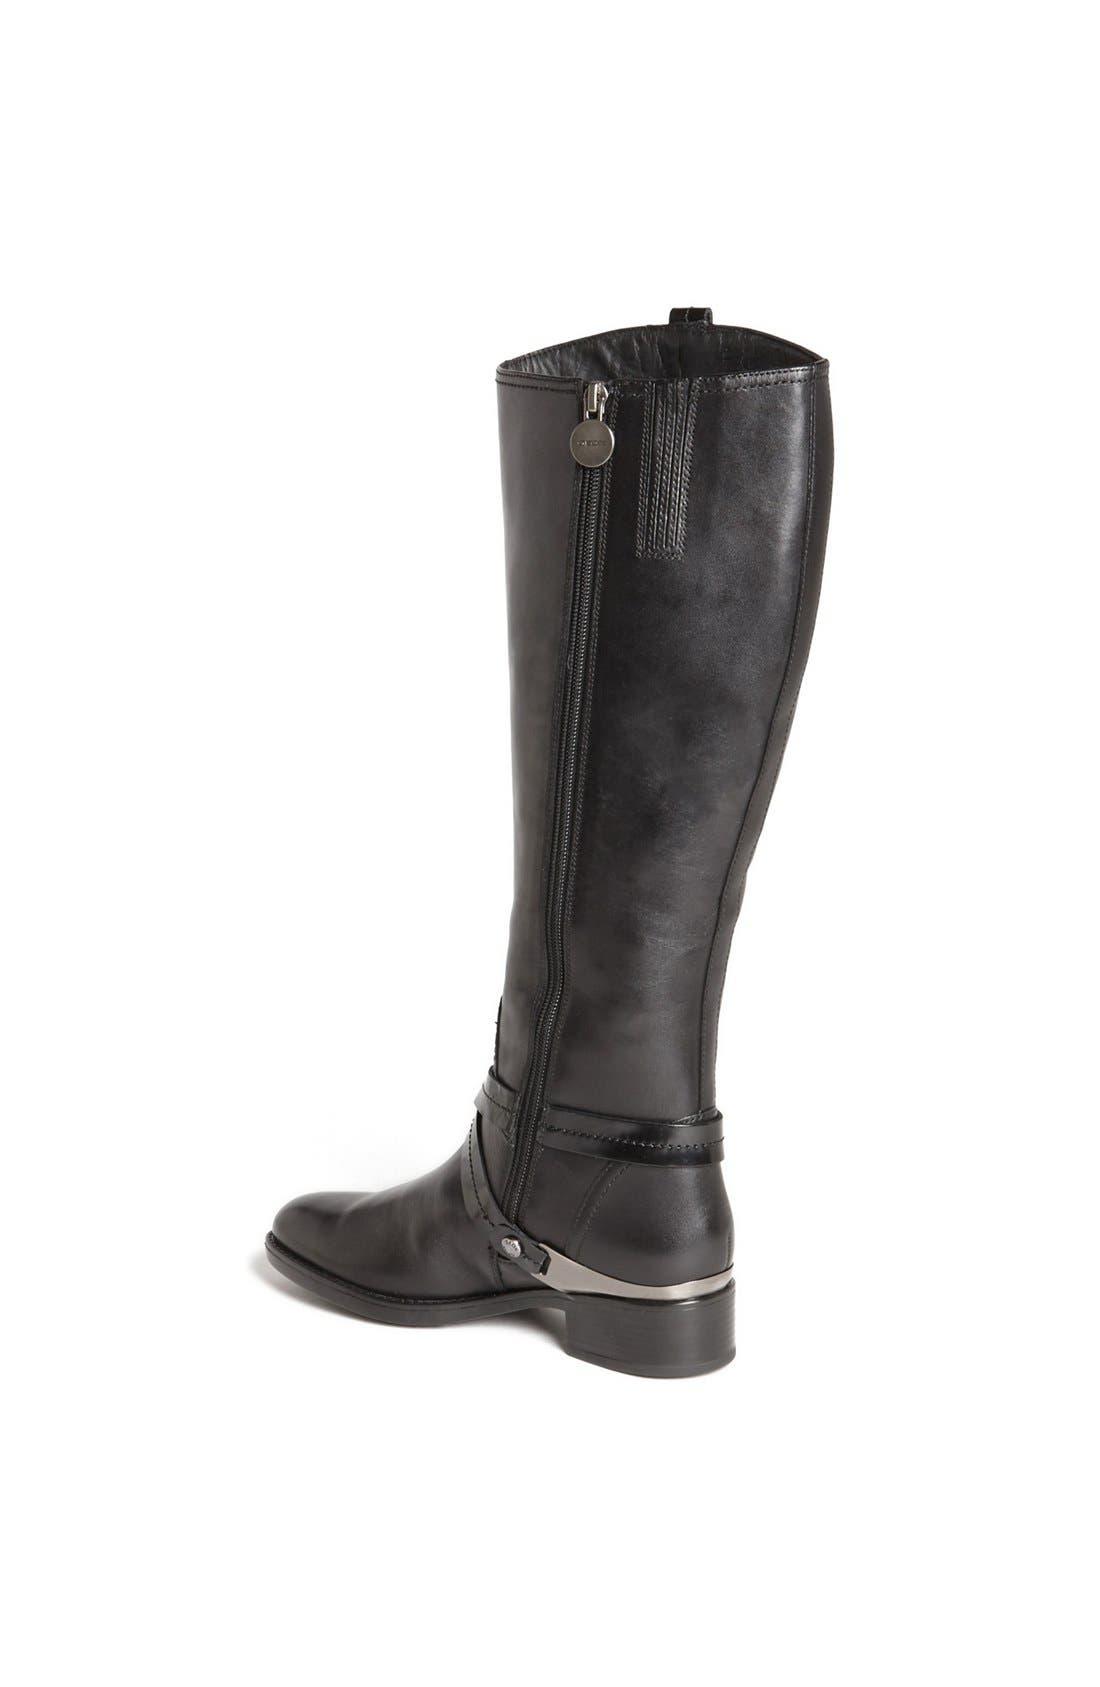 'Felicity' Tall Riding Boot,                             Alternate thumbnail 3, color,                             001